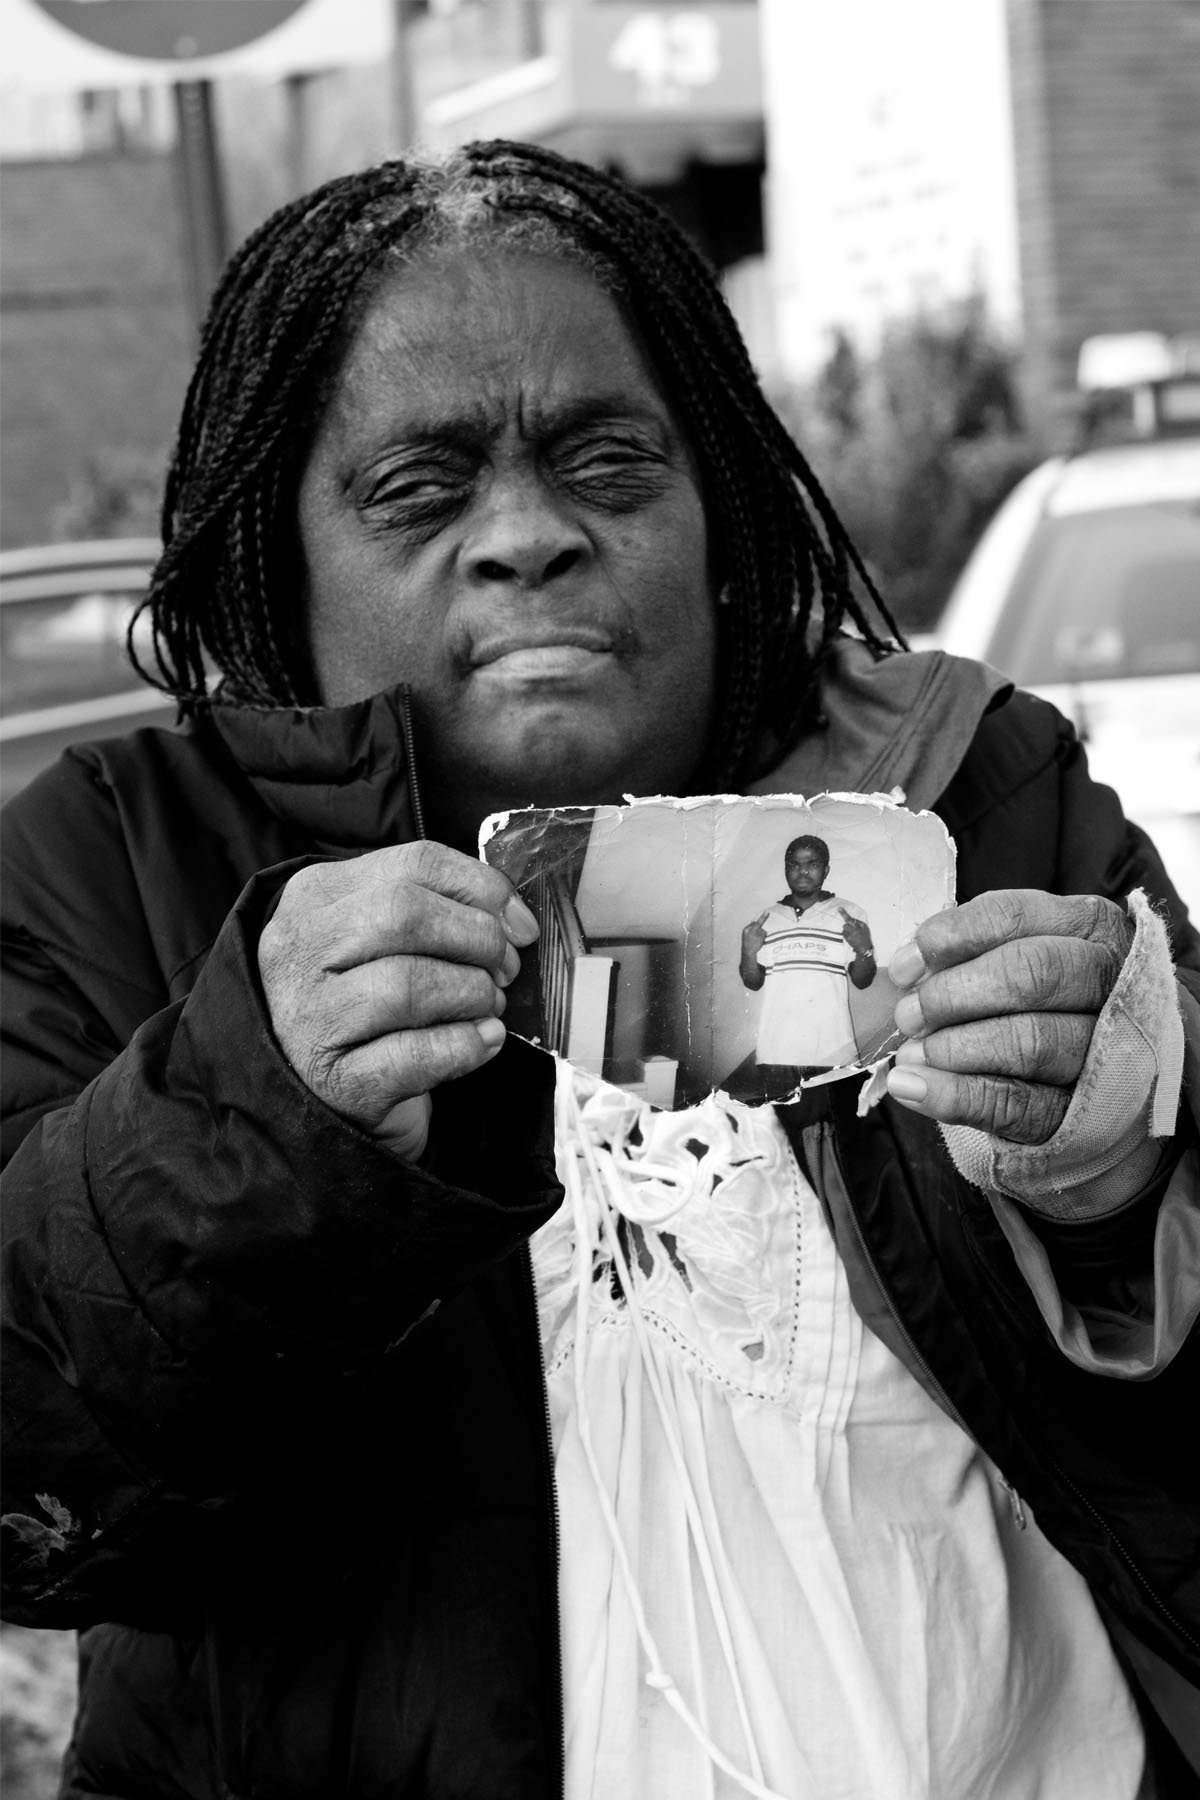 STOLEN LIVES & RESURRECTION : JUANITA YOUNG RESURRECTS HER SON MALCOLM FERGUSON MARCH 1, 2000 - PRESENT